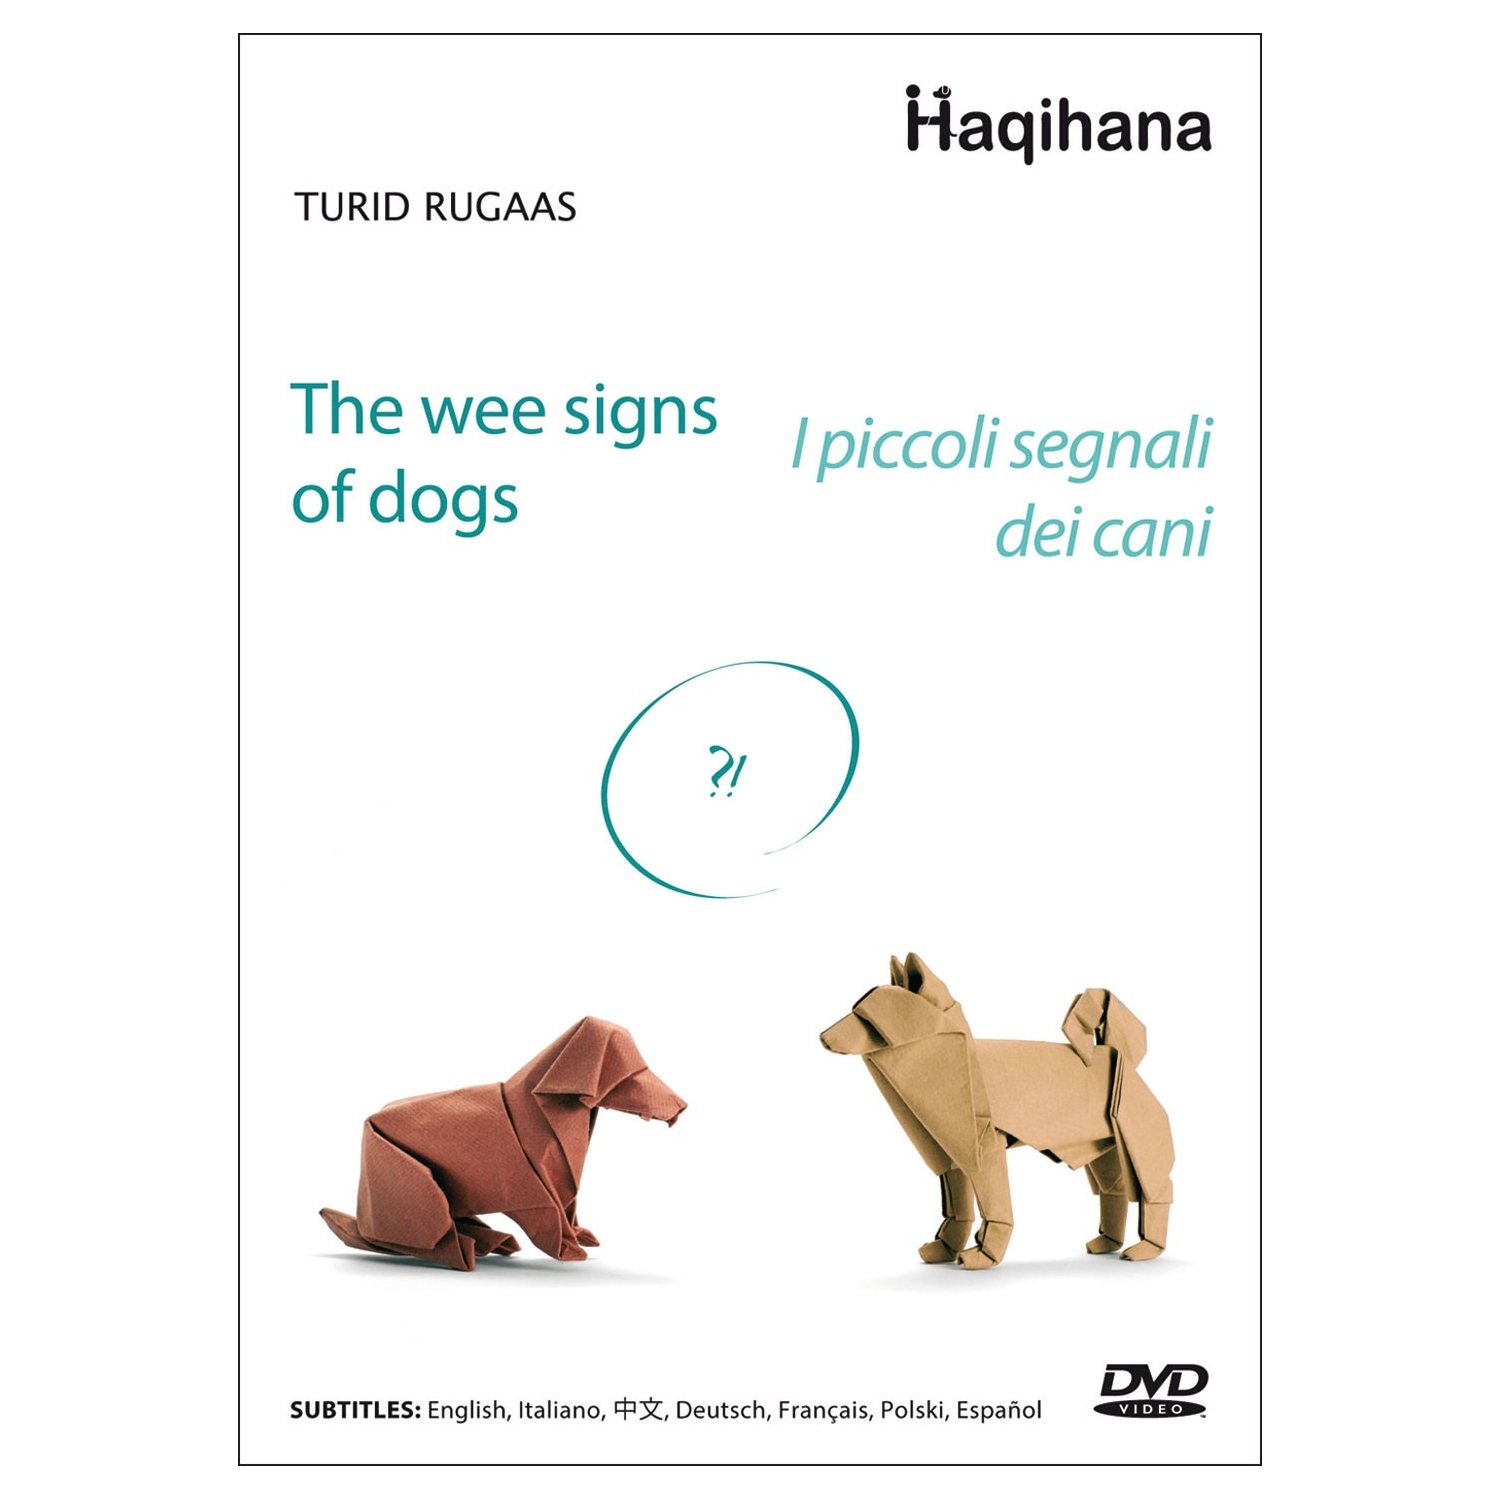 The wee signs of dogs